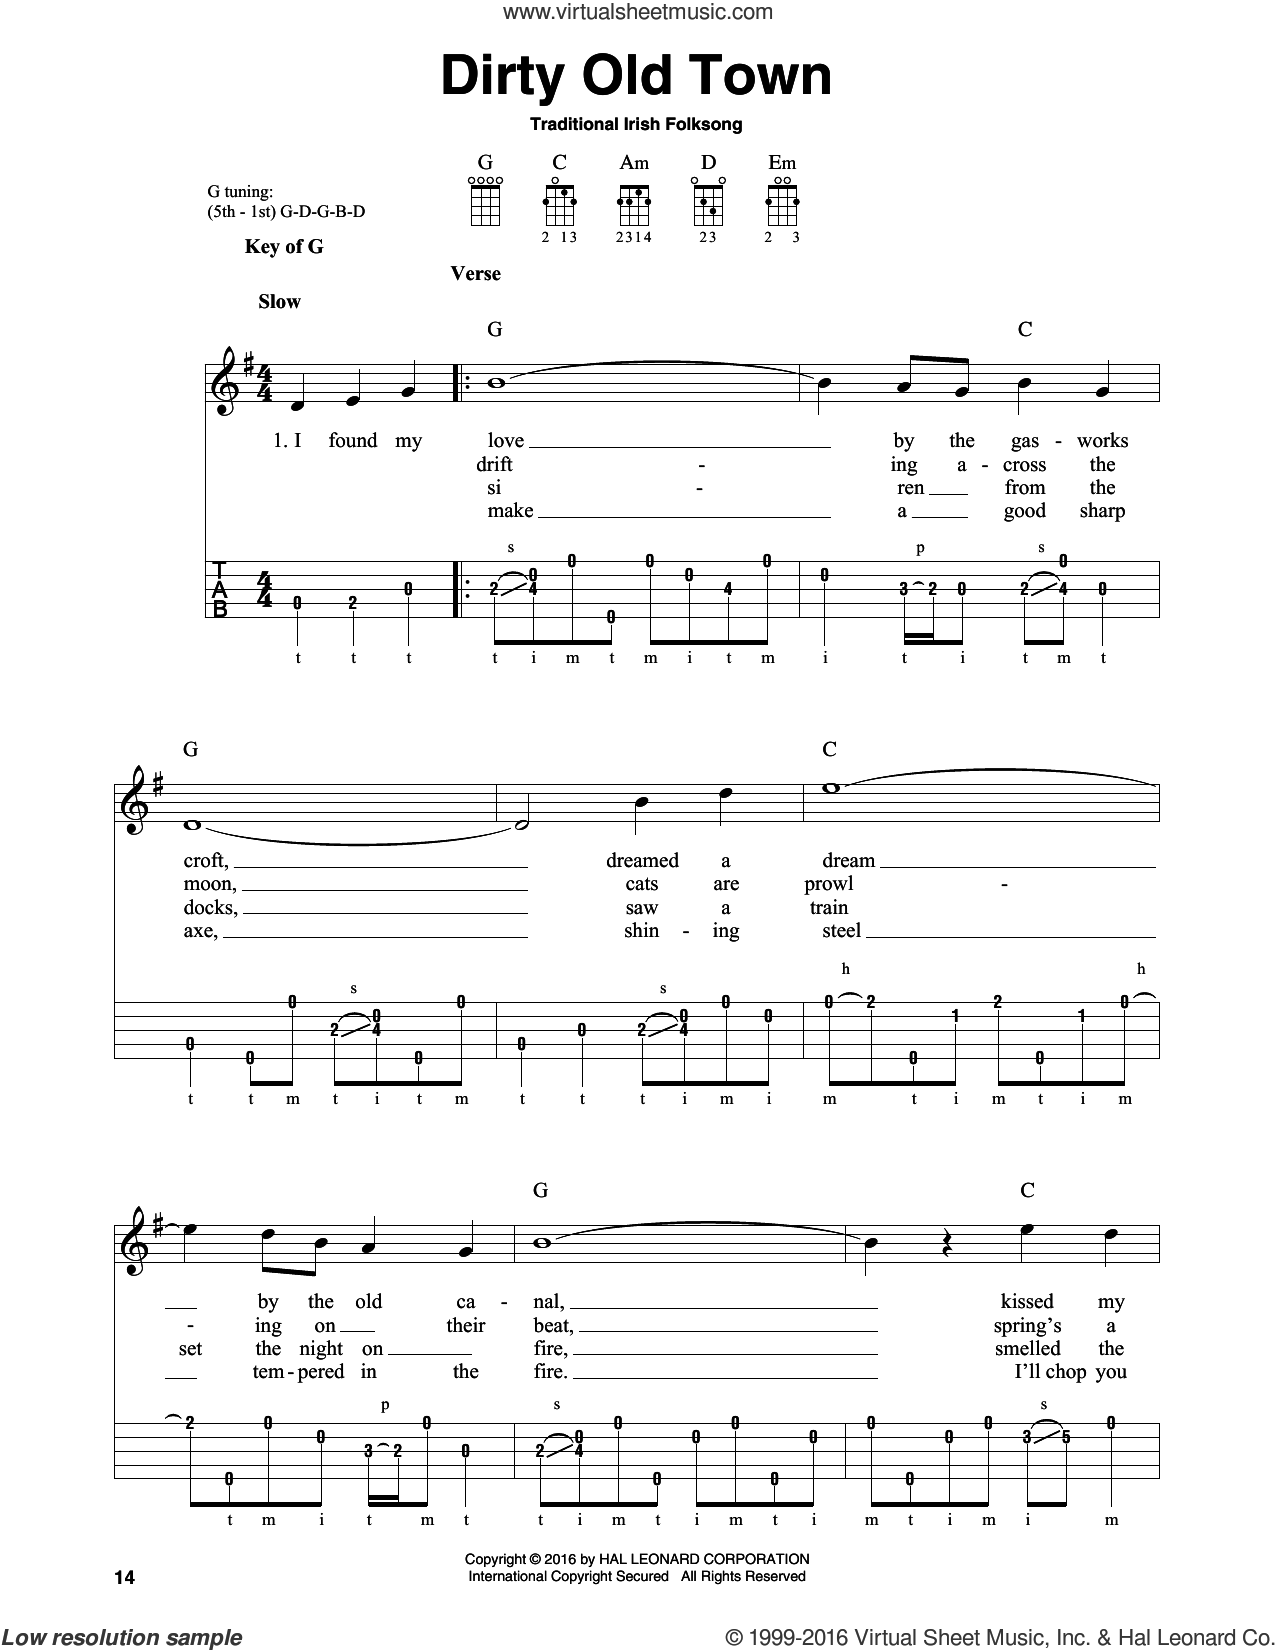 Dirty Old Town sheet music for banjo solo. Score Image Preview.